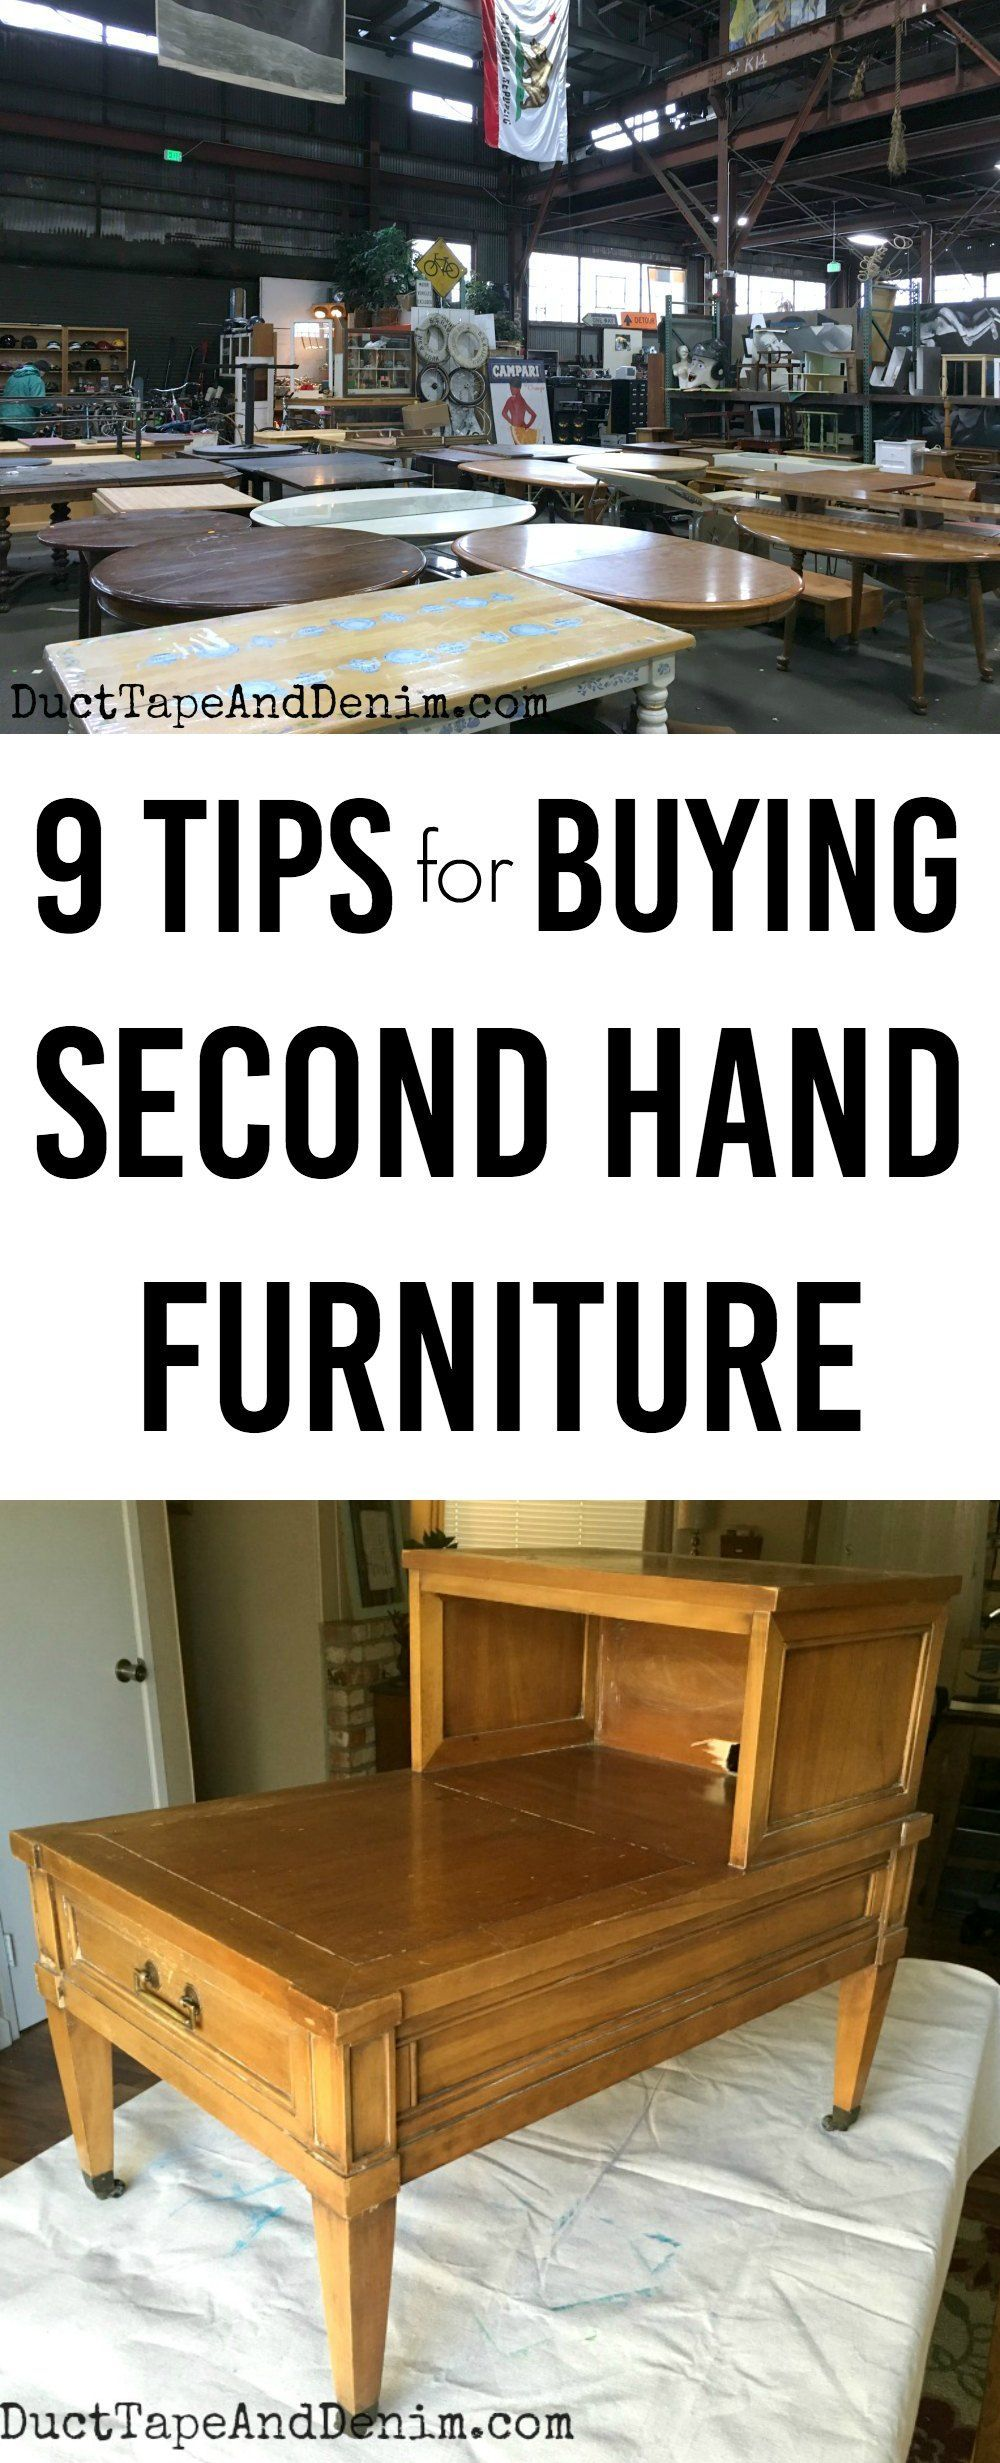 tips for buying second hand furniture ducttapeanddenim com rh pinterest com